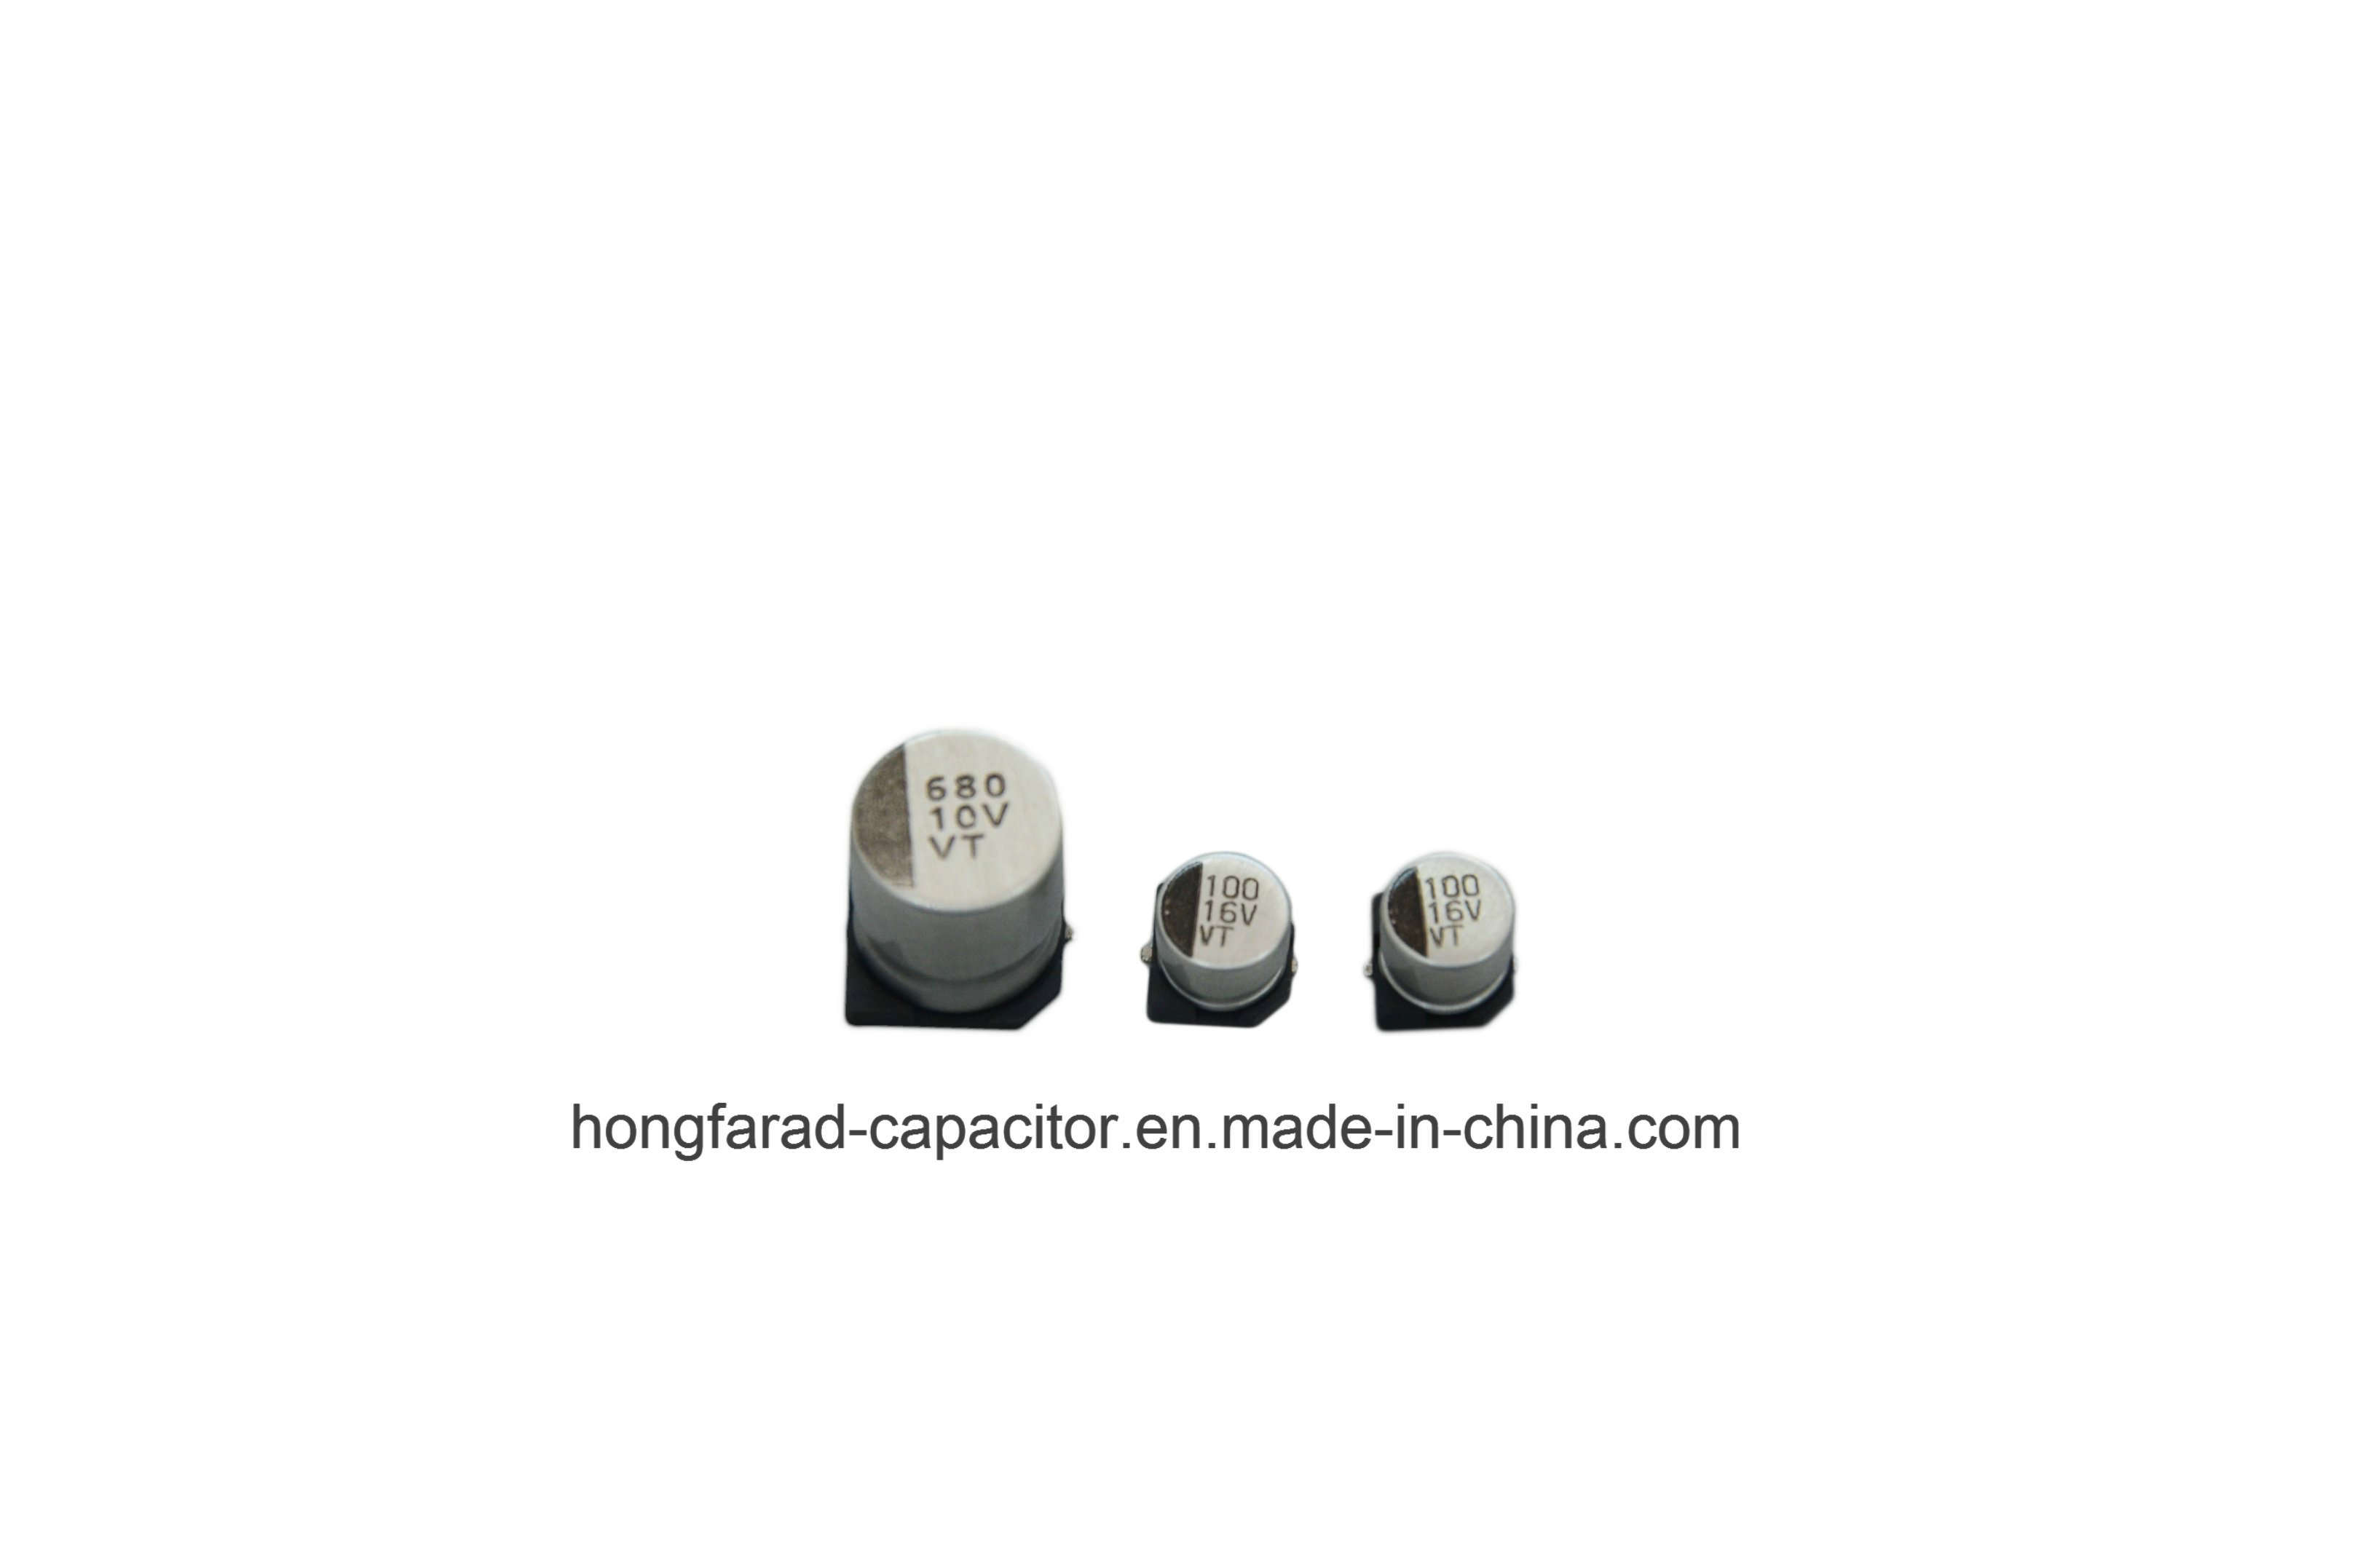 Vt 1000h at 105c SMD Aluminum Electrolytic Capacitor